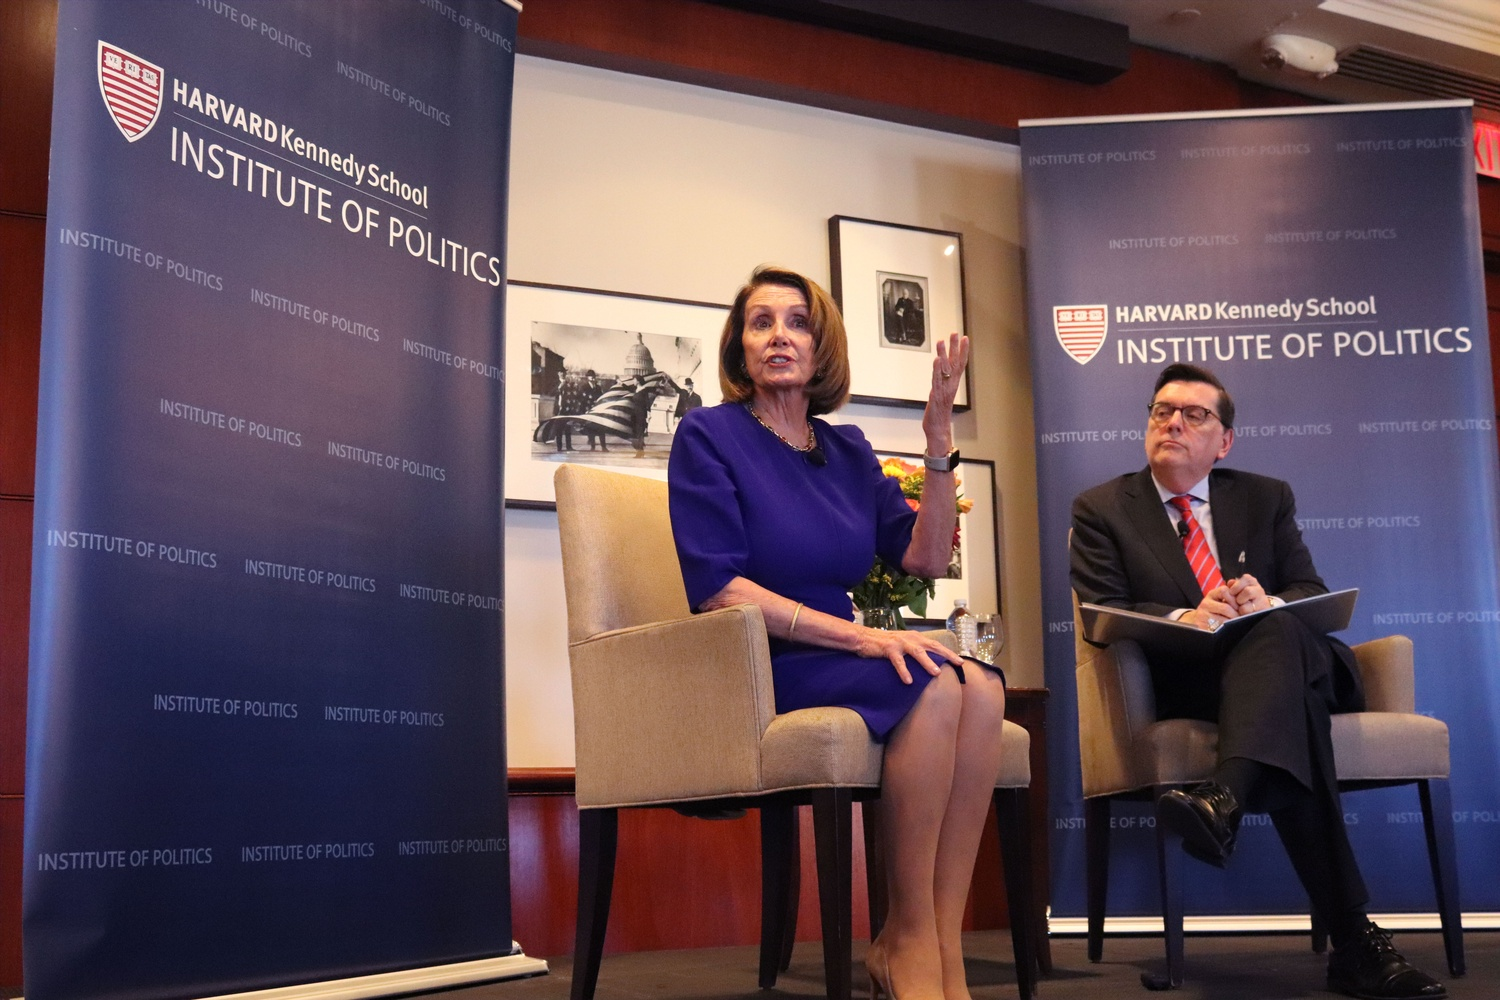 IOP Director Mark D. Gearan '78 in conversation with U.S. Rep. Nancy Pelosi, the Speaker of the House, at an IOP event in October 2018.